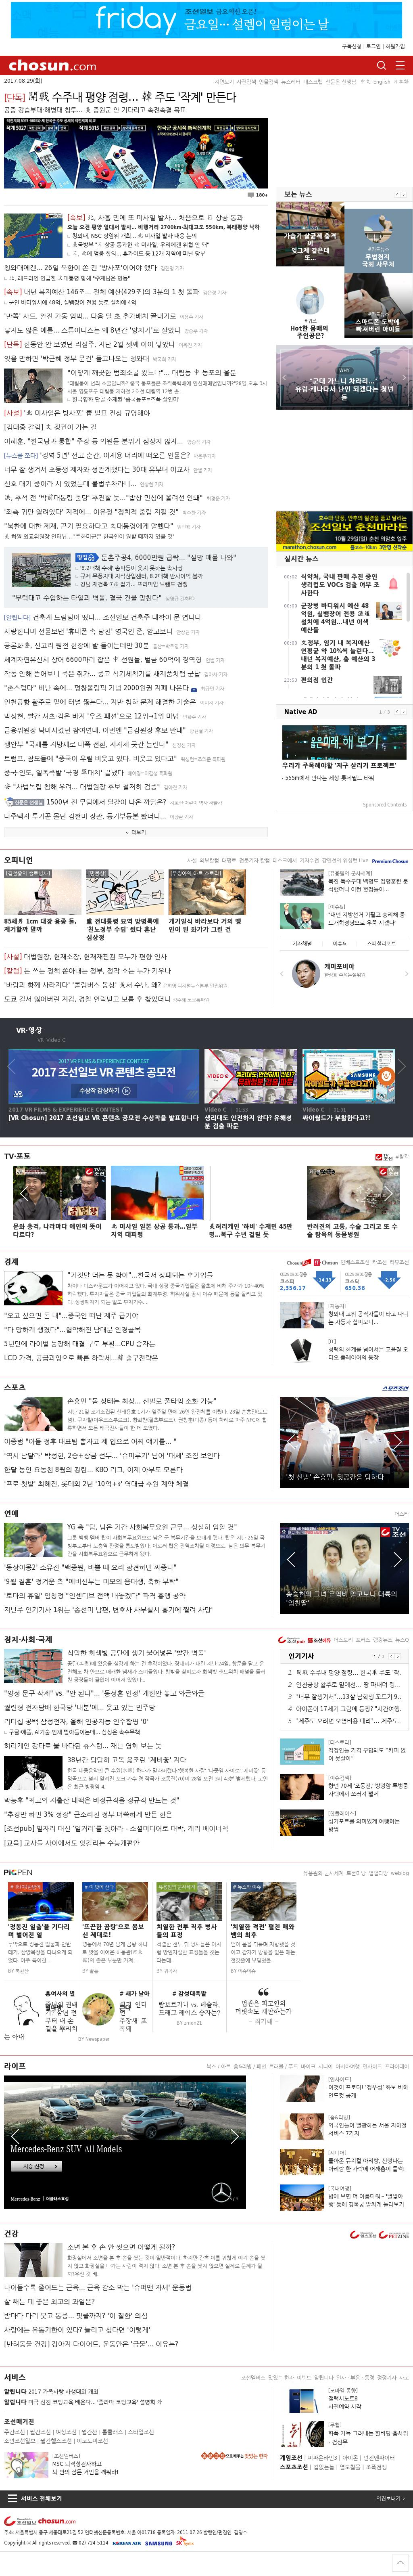 chosun.com at Tuesday Aug. 29, 2017, 12:03 a.m. UTC